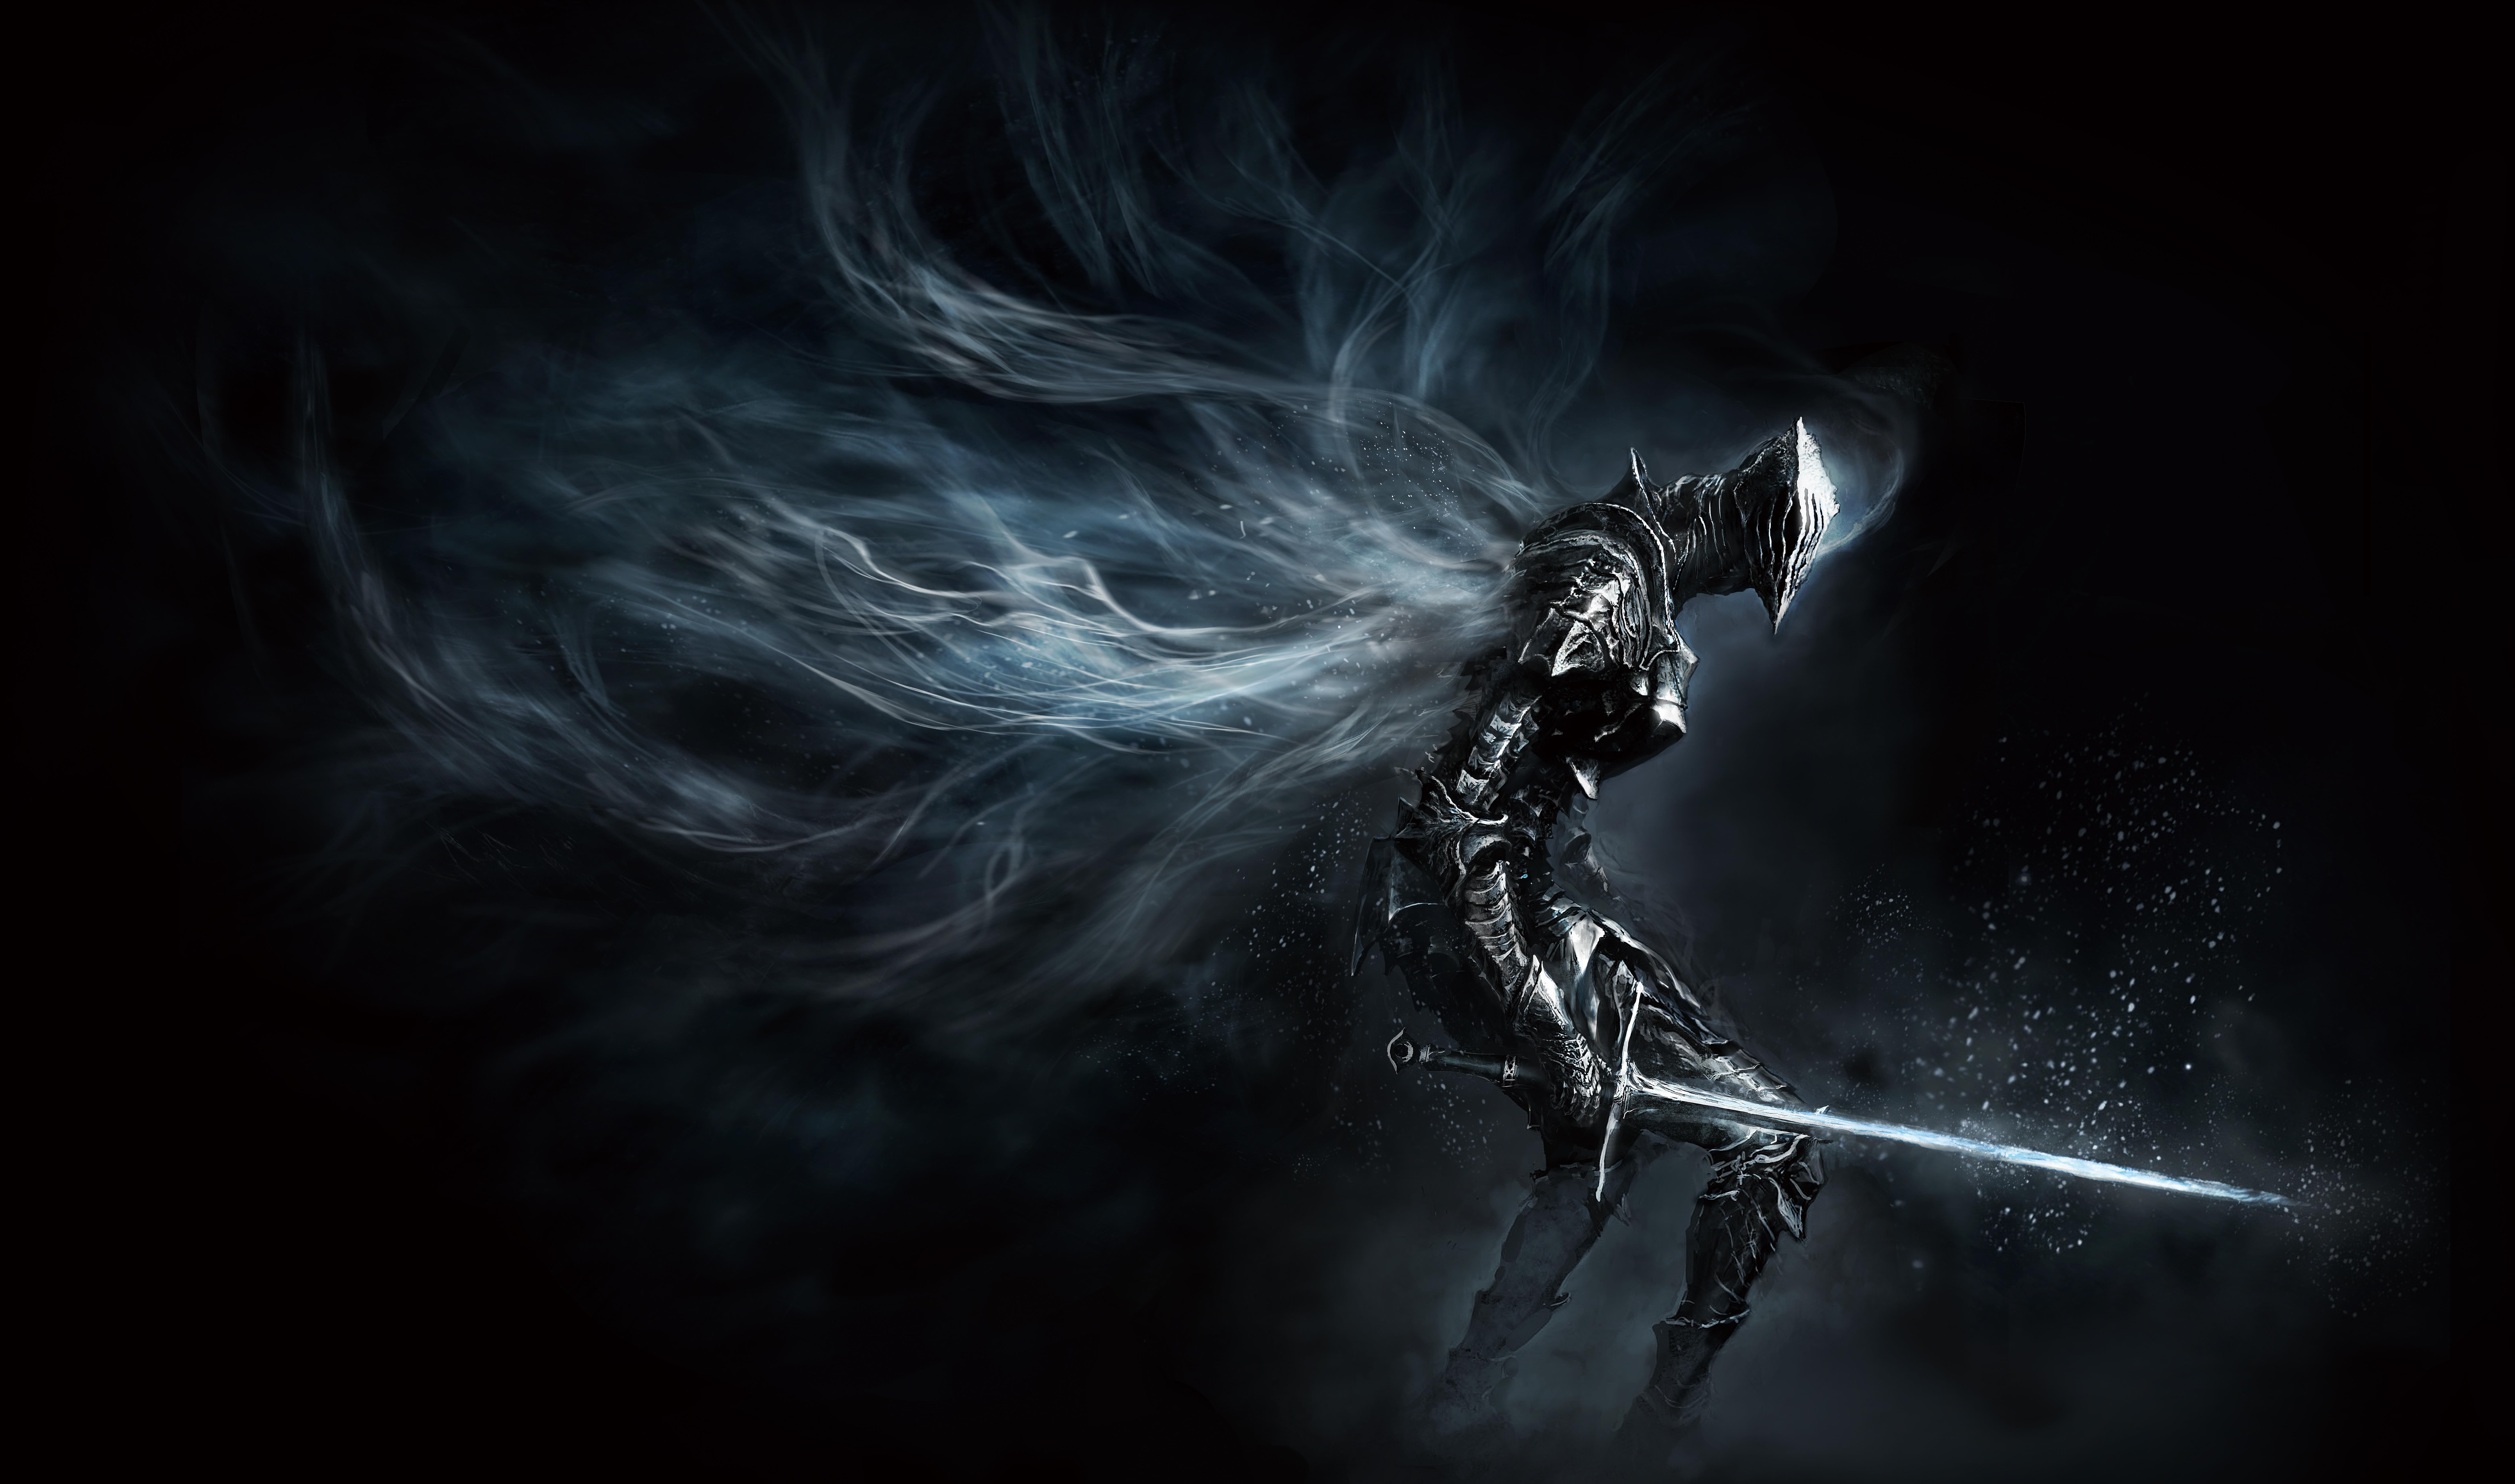 Black Knight Wallpapers Top Free Black Knight Backgrounds Wallpaperaccess